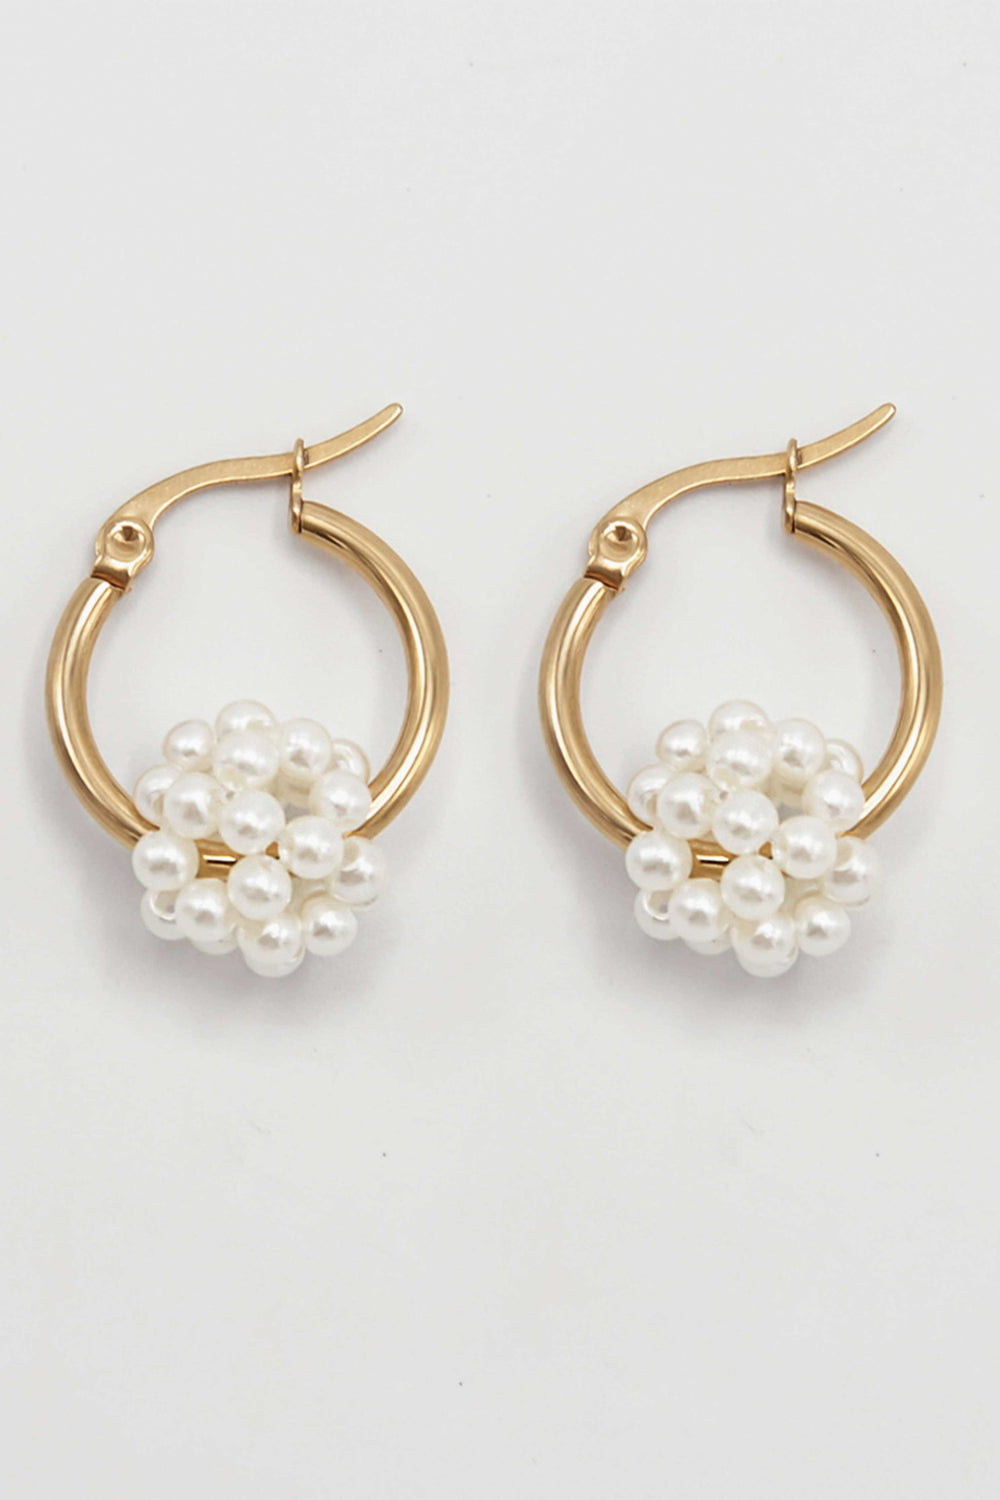 YOUR'E A JEWEL EARRINGS - Chic Le Frique